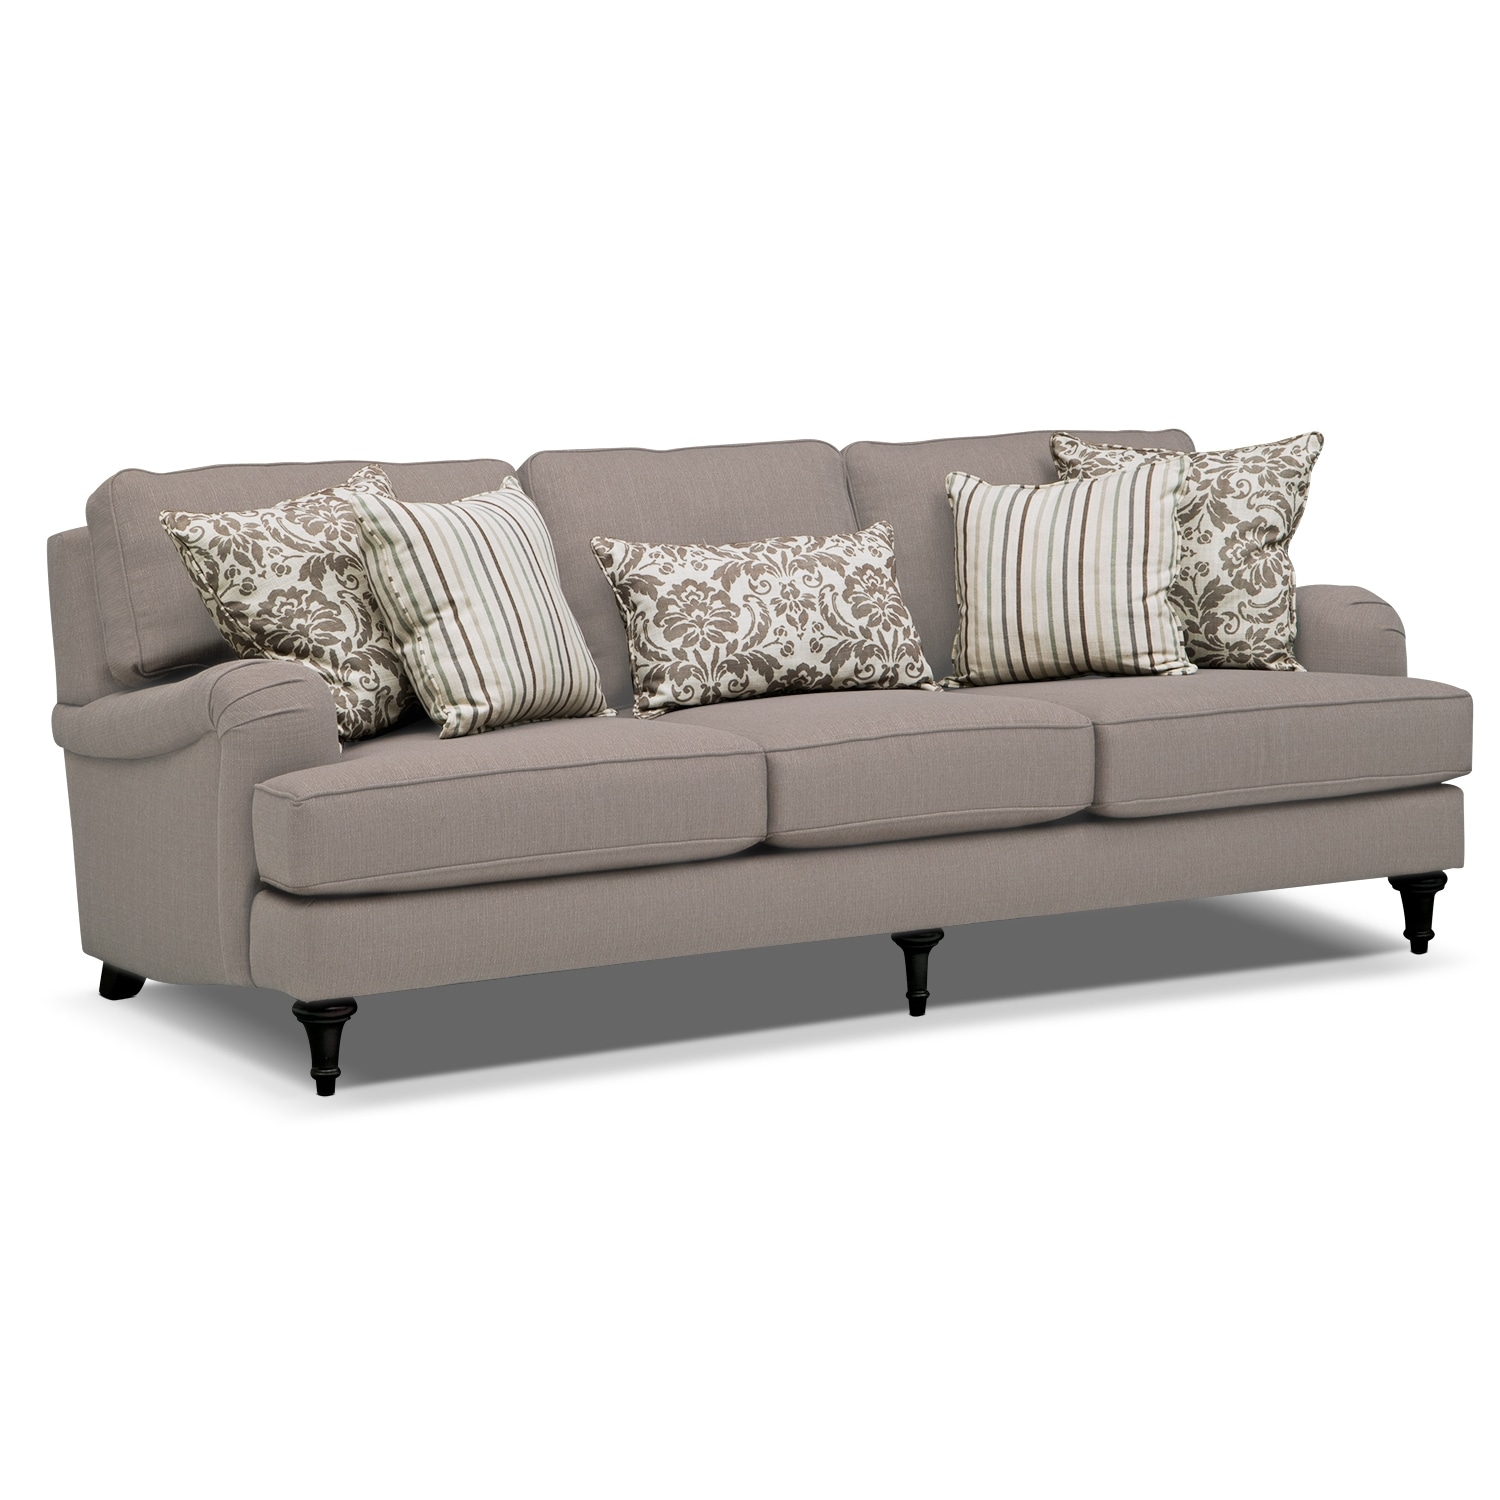 Candice sofa gray value city furniture for In living furniture